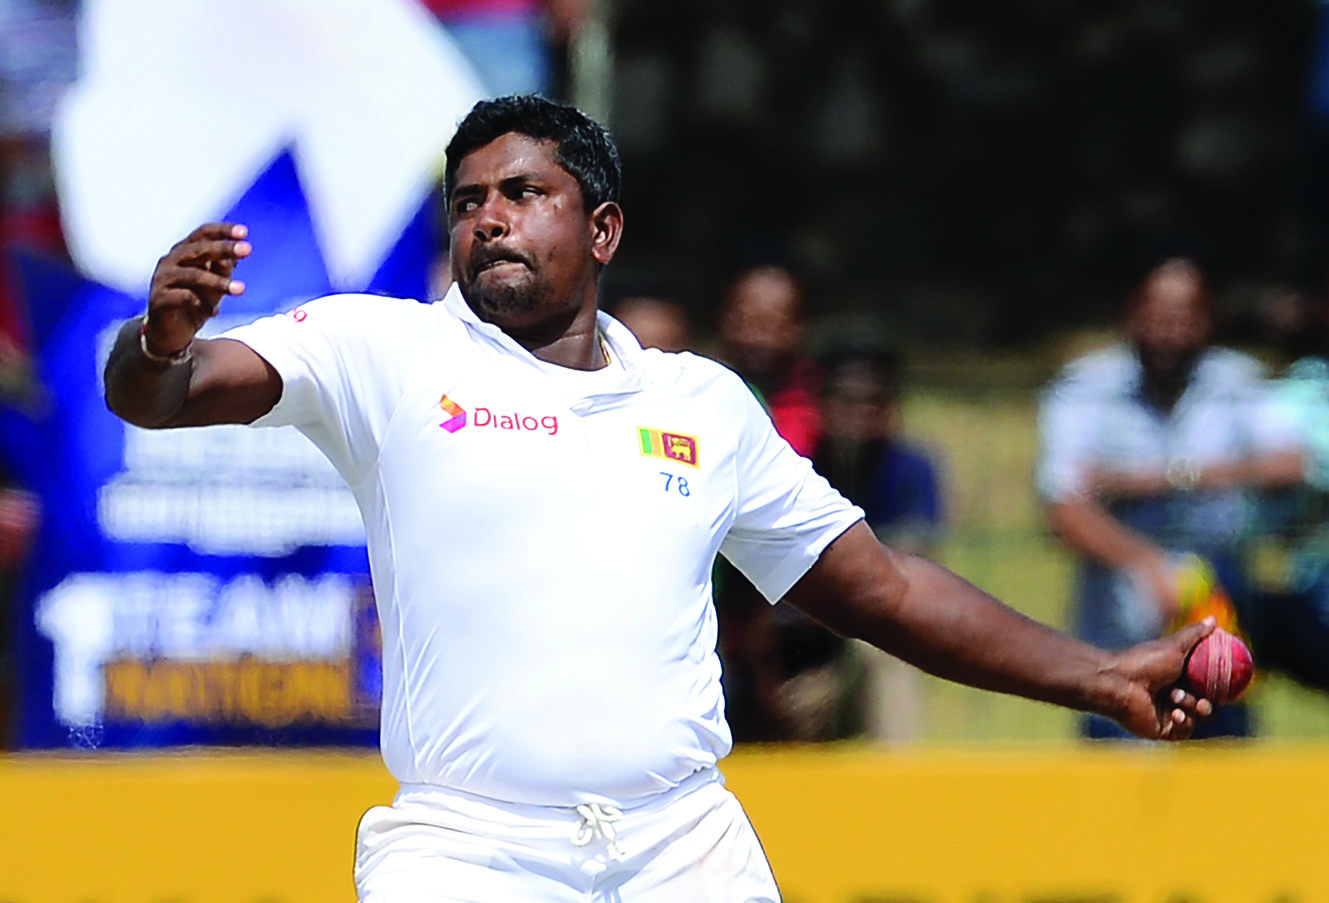 Sri Lanka's Rangana Herath delivers a ball during the final day of the third and final Test match between Sri Lanka and Australia at The Sinhalese Sports Club (SSC) Ground in Colombo on August 17, 2016.  / AFP / LAKRUWAN WANNIARACHCHI        (Photo credit should read LAKRUWAN WANNIARACHCHI/AFP/Getty Images)